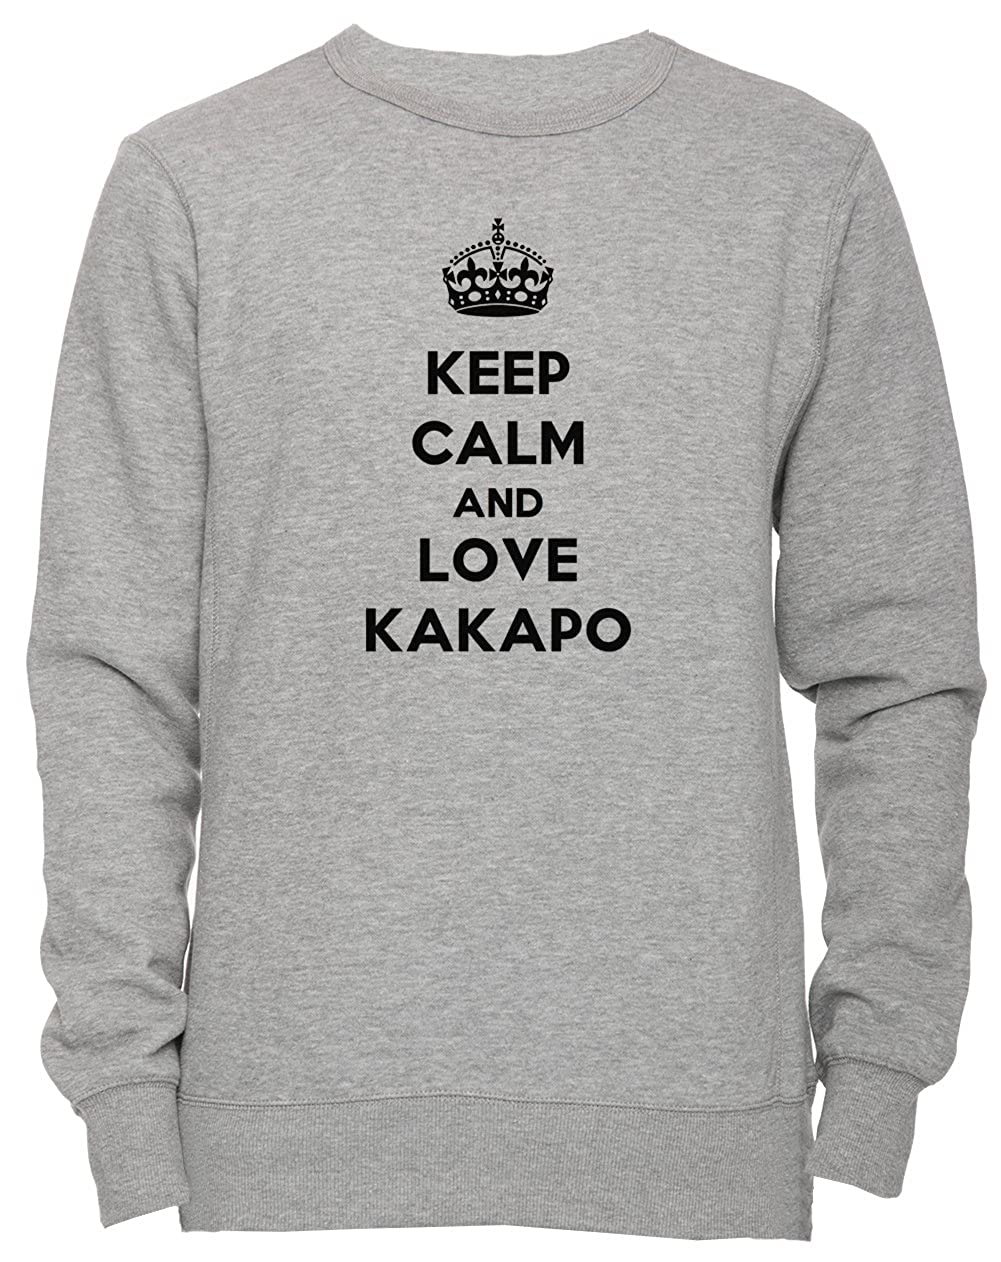 Keep Calm and Love Kakapo Unisexe Homme Femme Sweat-Shirt Jersey Pull-Over Gris Toutes Les Tailles Mens Womens Jumper Sweatshirt Pullover Grey